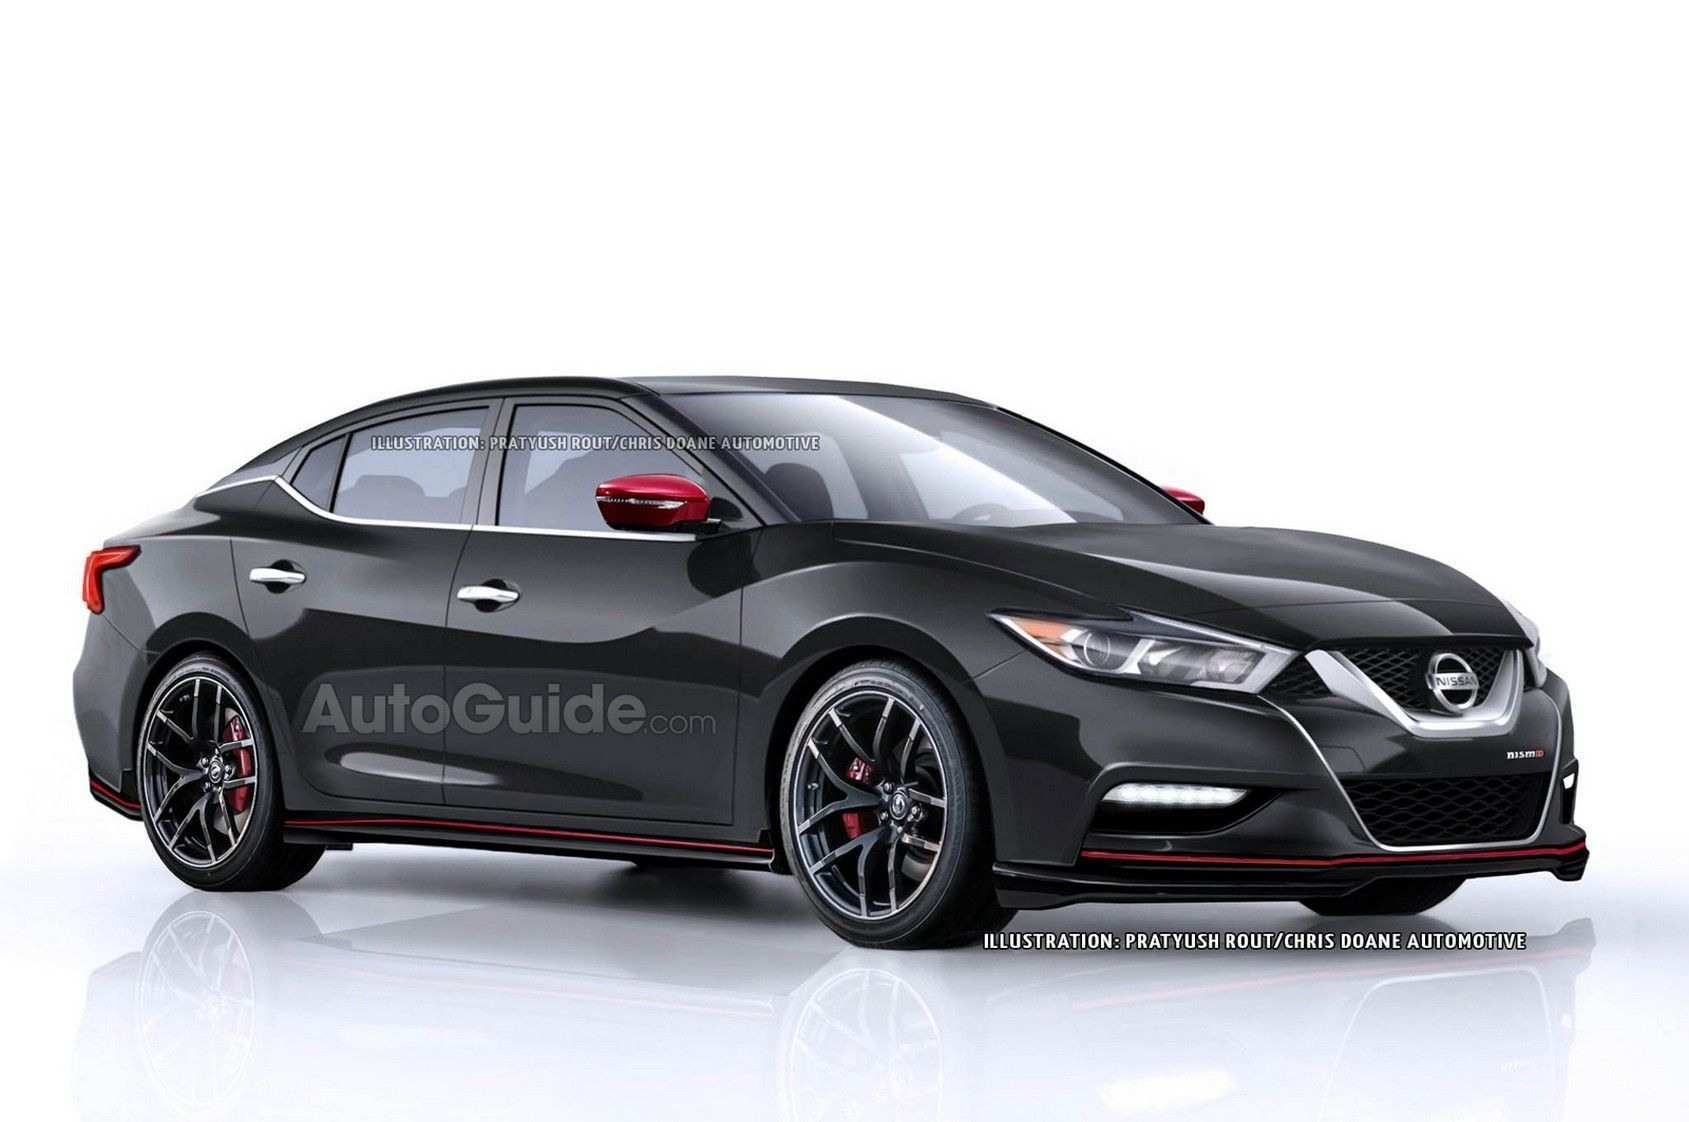 32 New Nissan Maxima Redesign 2020 Spy Shoot with Nissan Maxima Redesign 2020